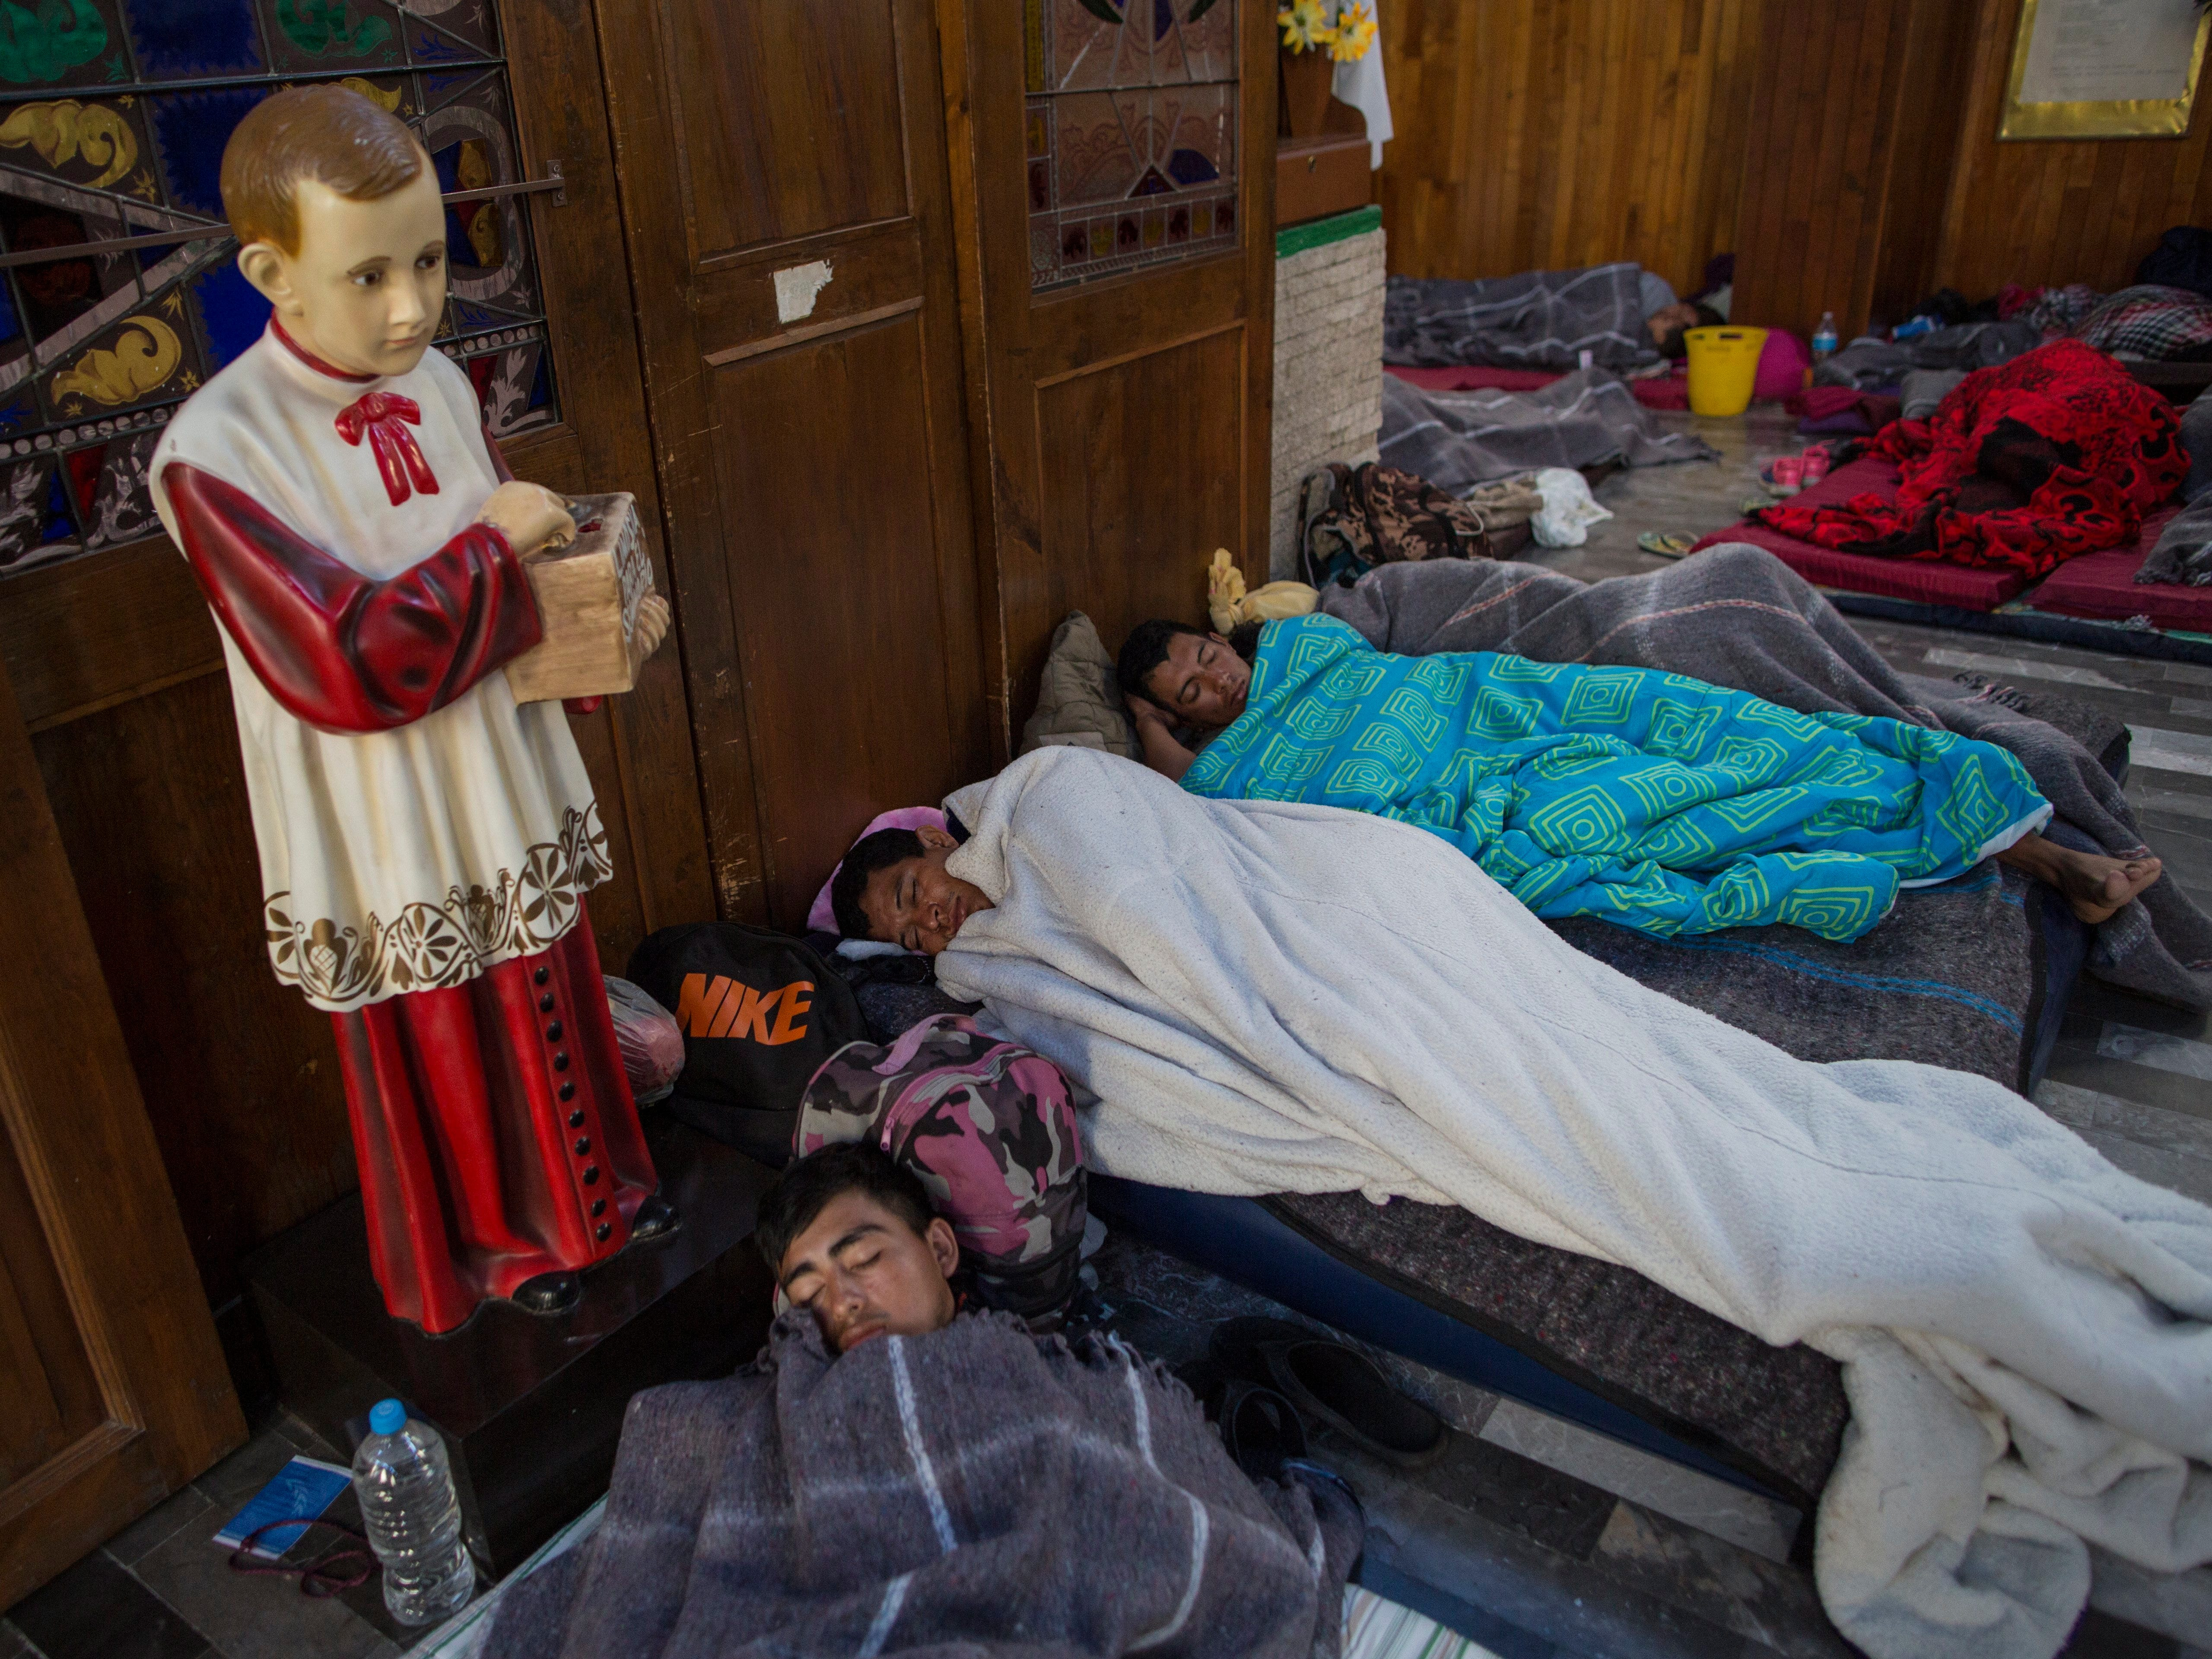 Central American migrants sleep inside a church that opened its doors to members of a caravan who splintered off the main group in order to reach the capital faster, in Puebla, Mexico, early Sunday, Nov. 4, 2018. Thousands of Central American migrants resumed their push toward the United States on Sunday, a day after arguments over the path ahead saw some travelers splinter away from the main caravan, which is entering a treacherous part of its journey through Mexico.